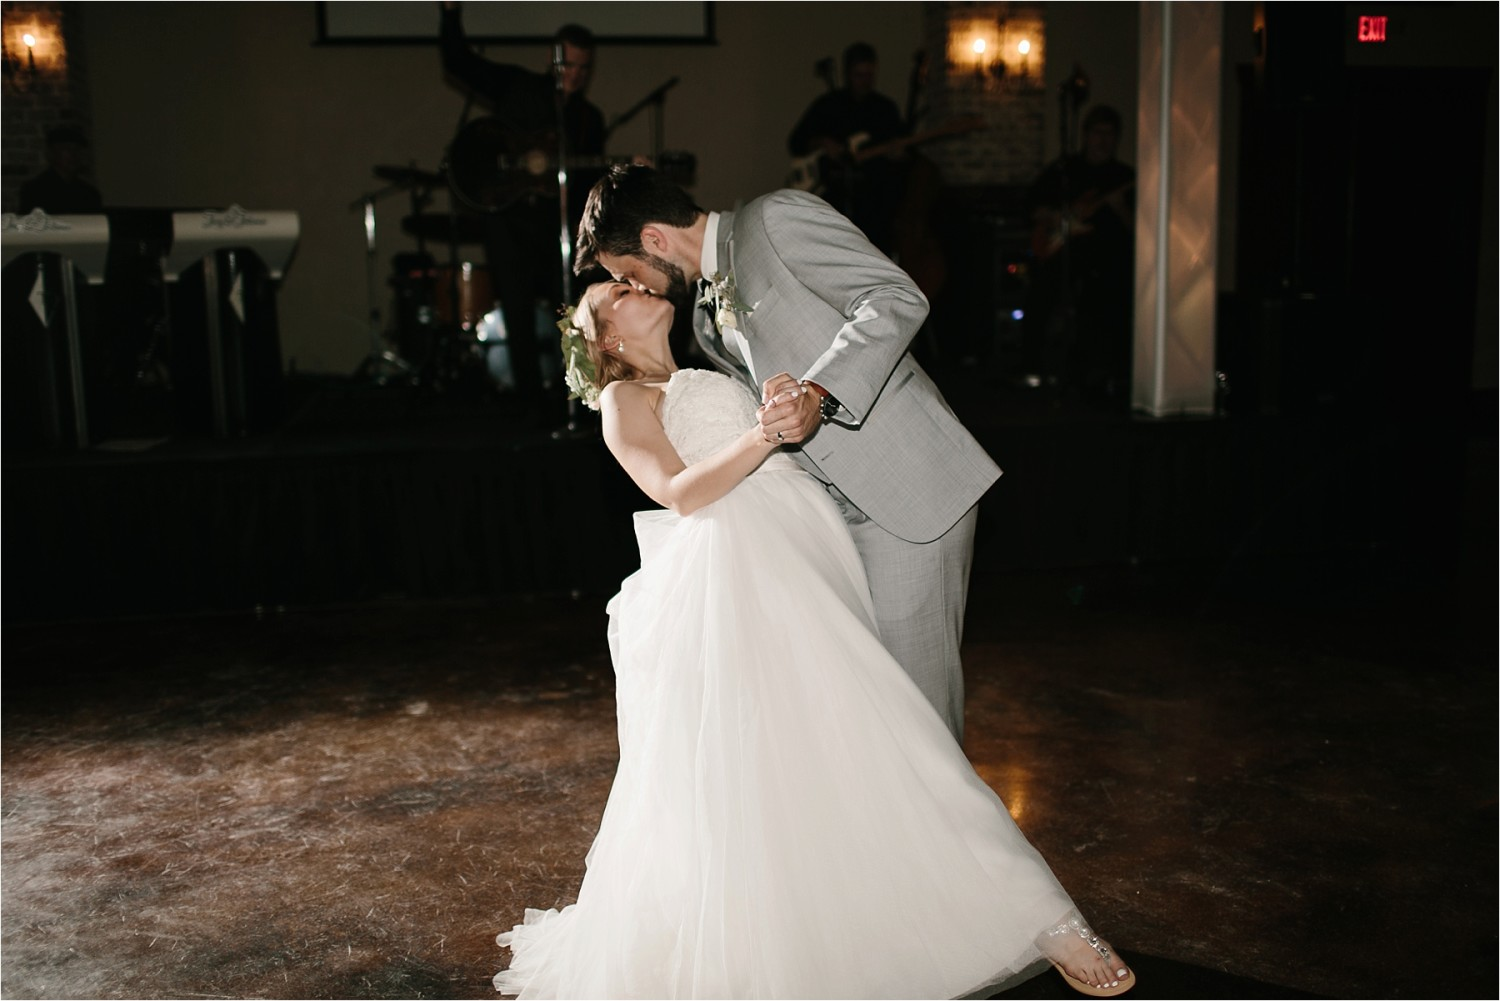 brad-lara-__-a-grey-and-blush-pink-intimate-wedding-at-hidden-waters-event-center-in-waxahachie-tx-by-north-texas-wedding-photographer-rachel-meagan-photography-_-099